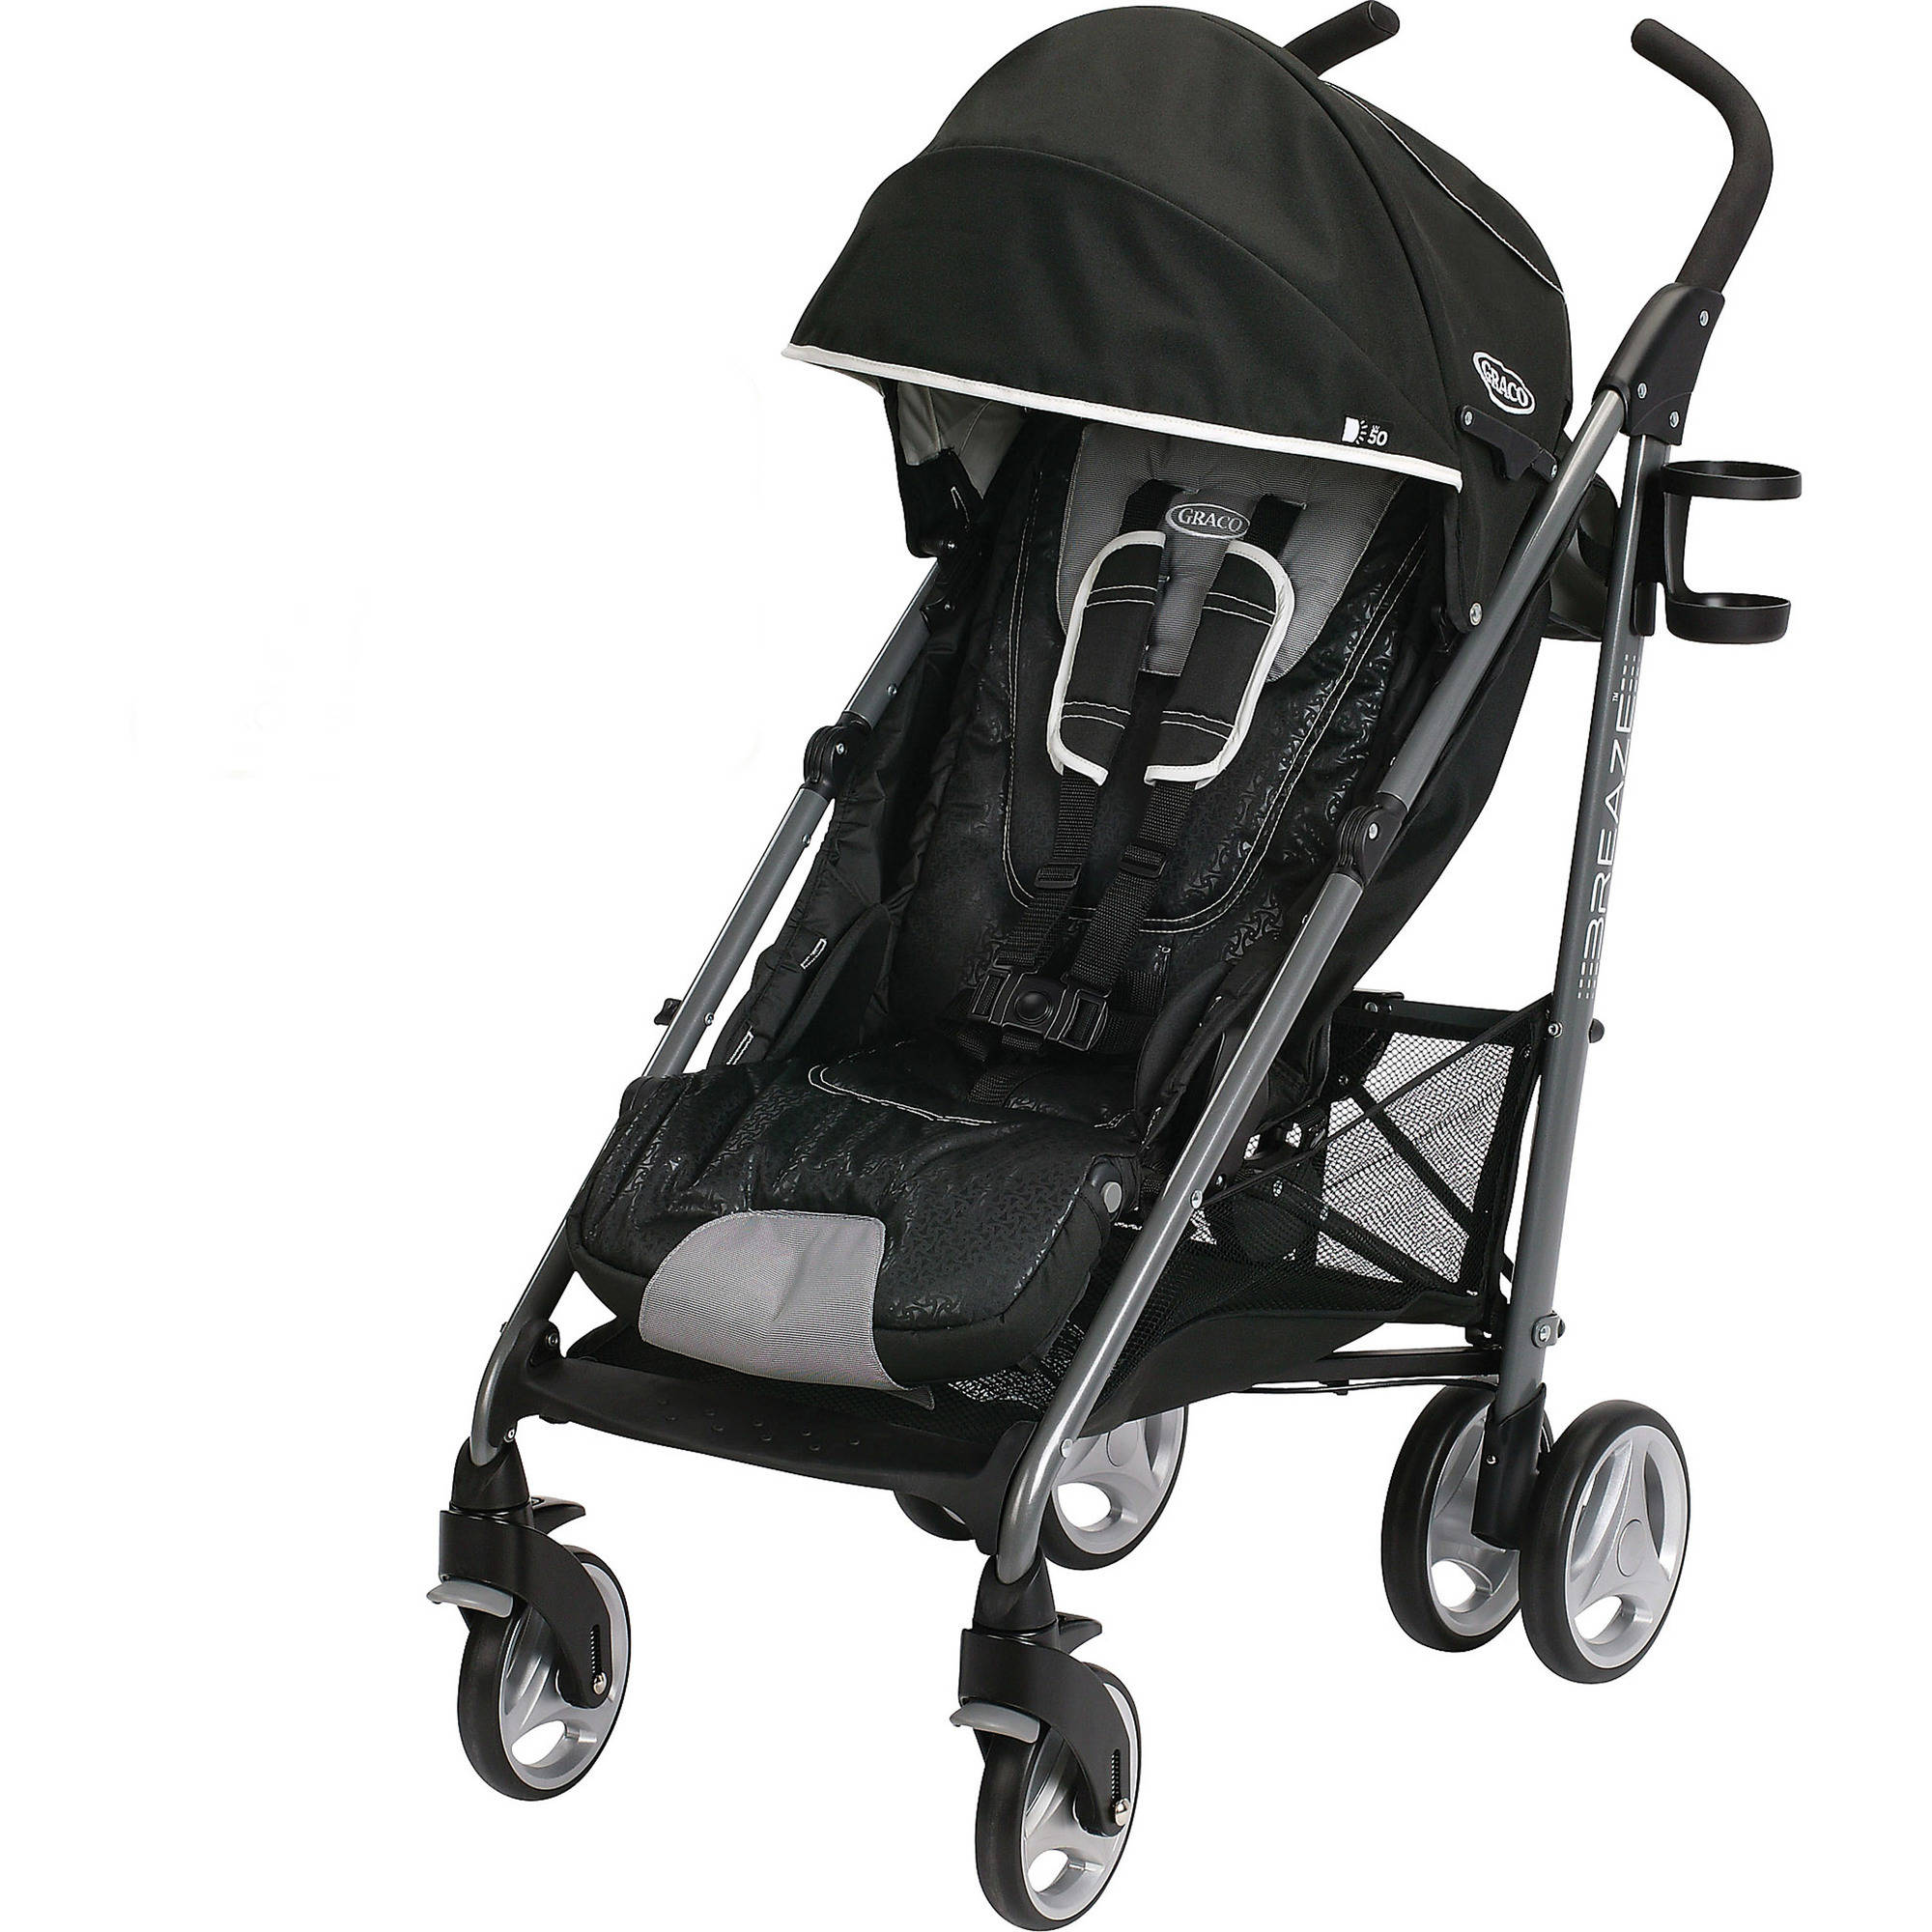 Graco Breaze Click Connect Umbrella Stroller, Harris